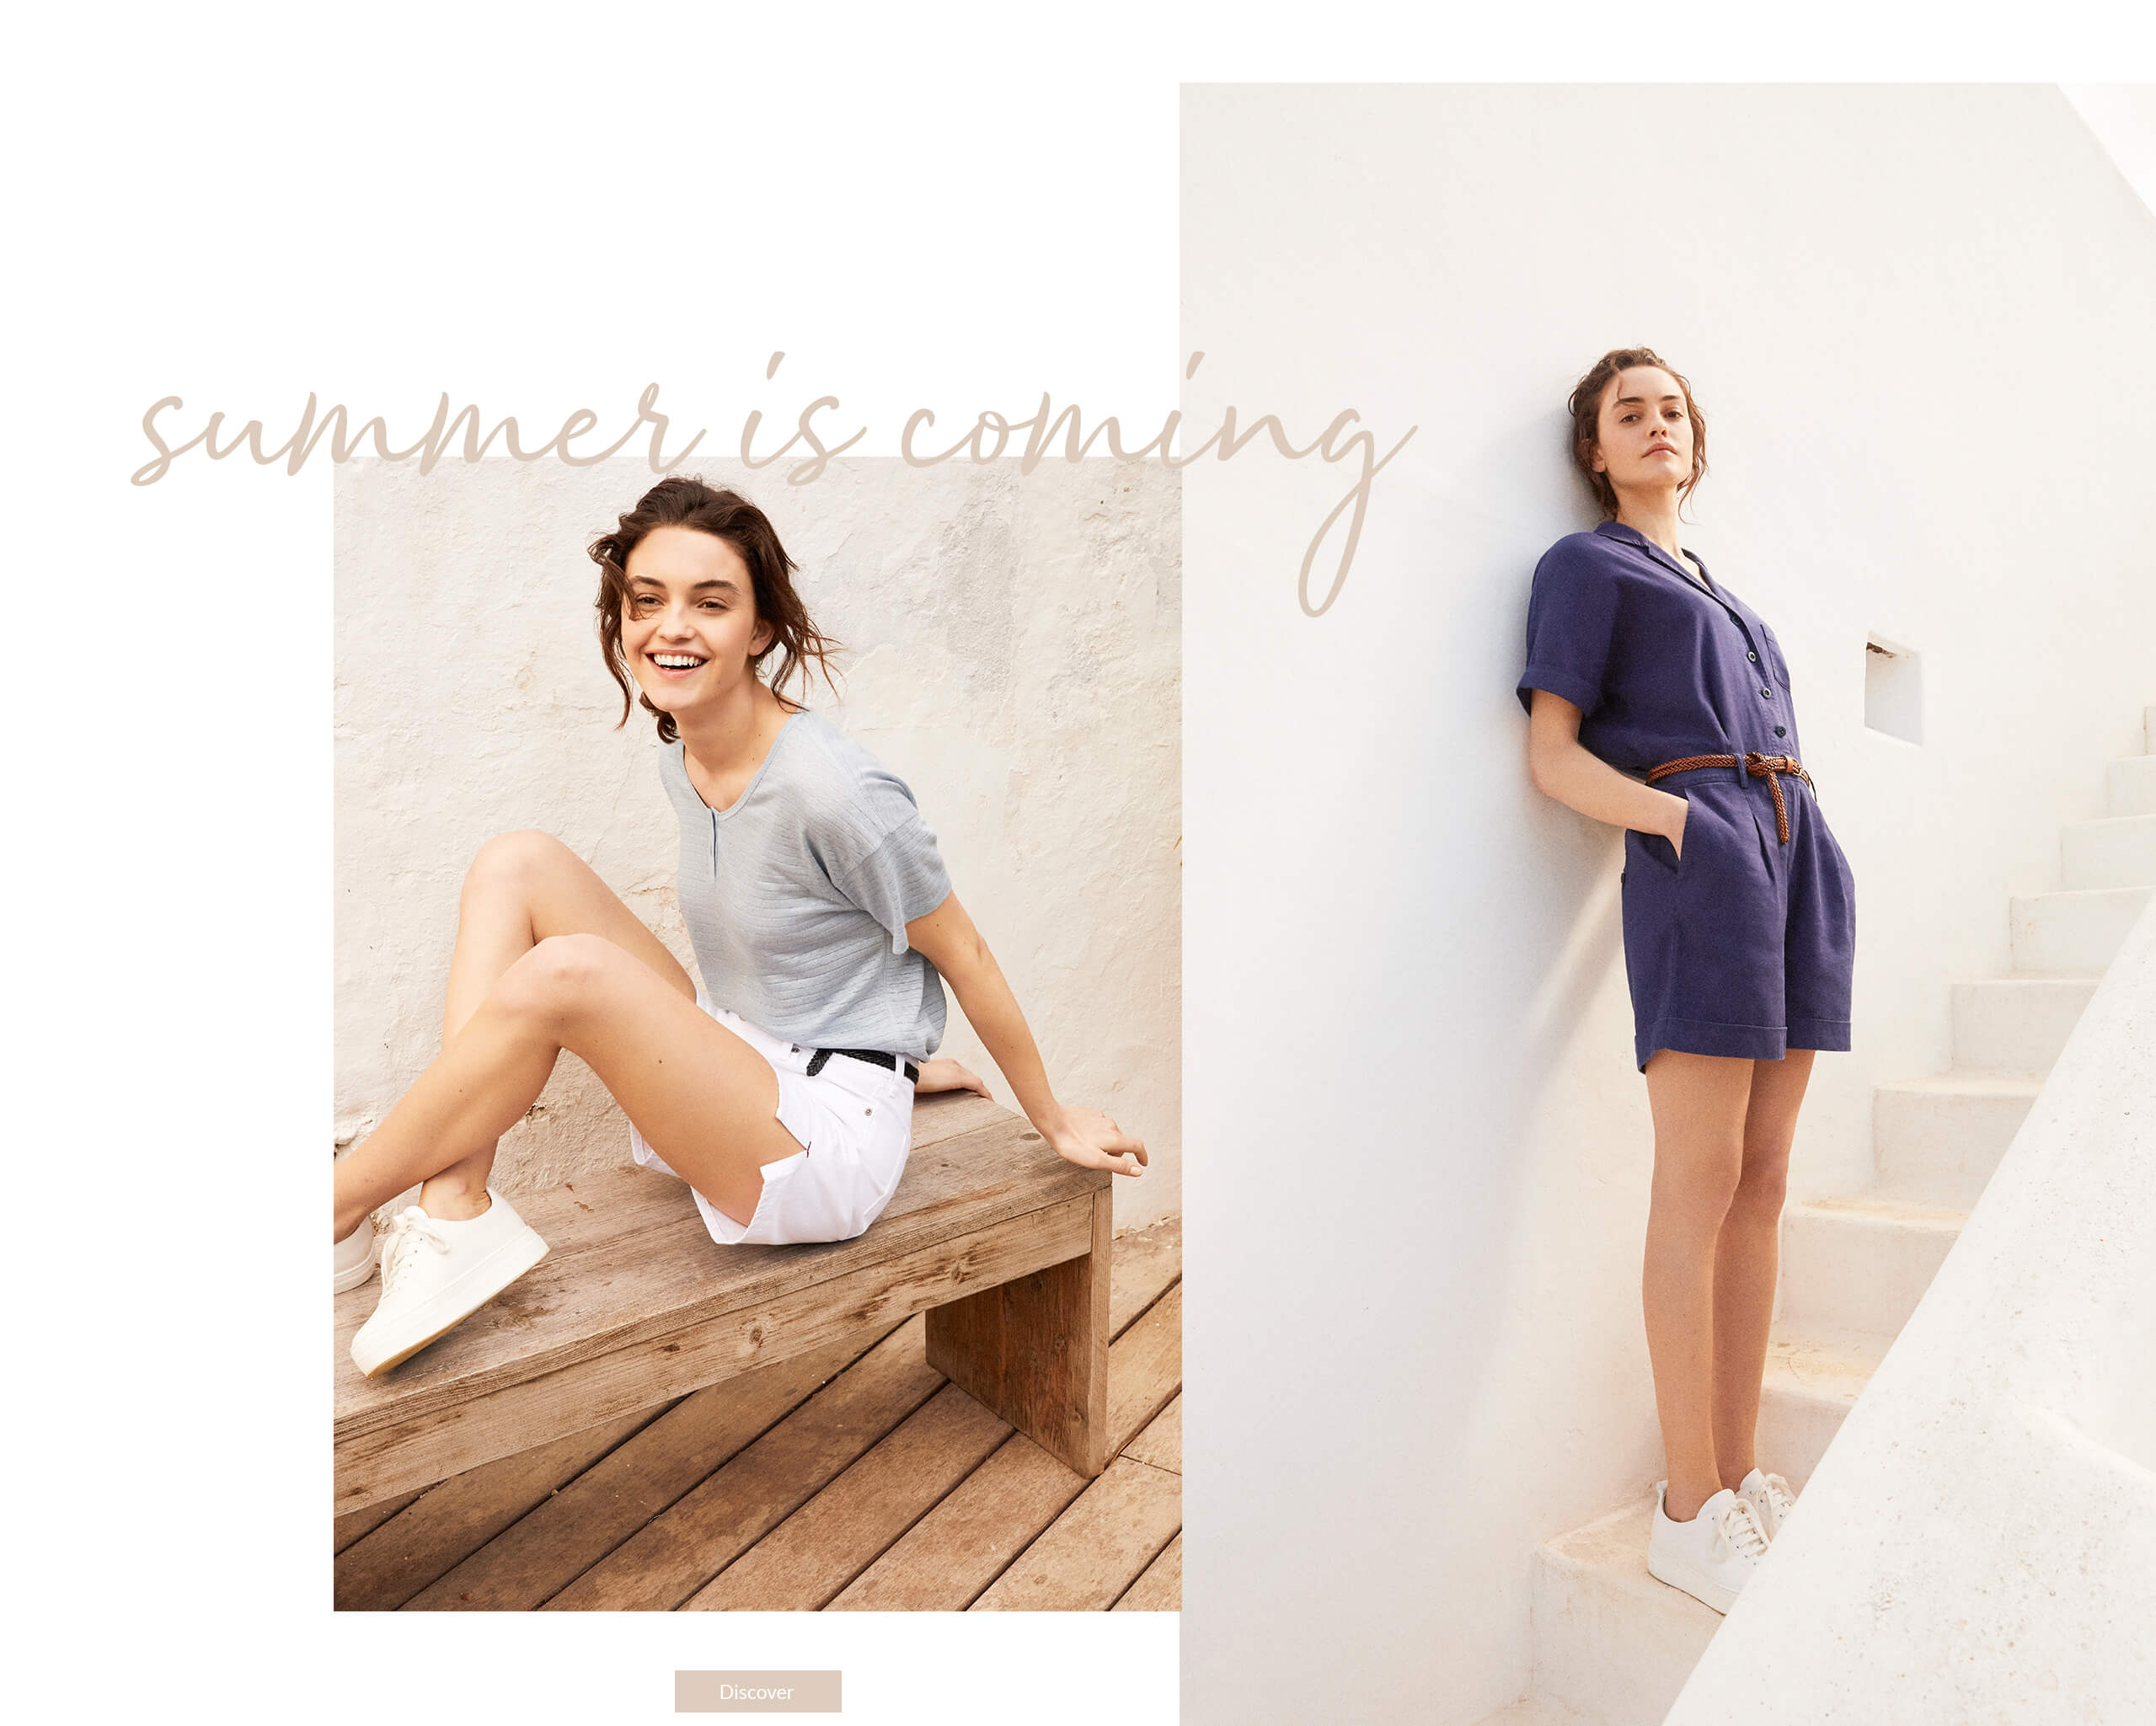 SS19 Summer is coming